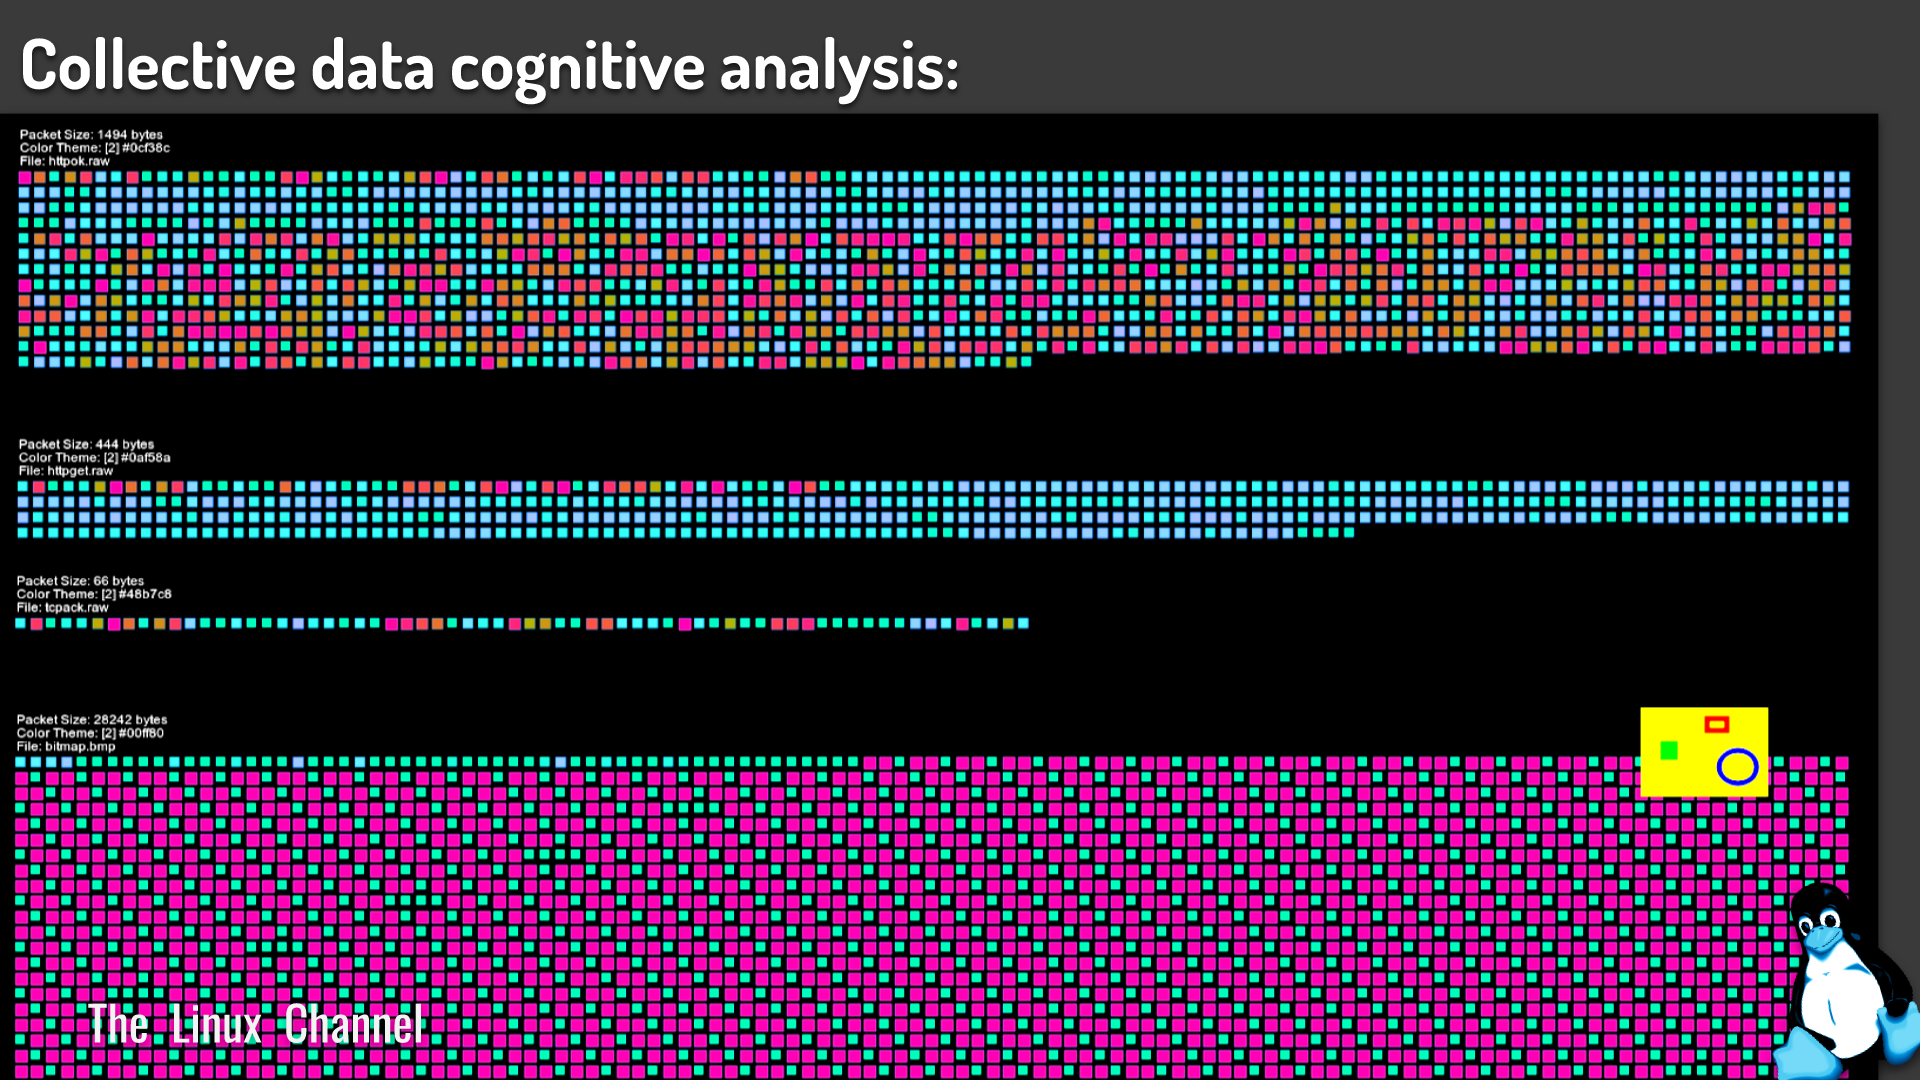 Collective data cognitive analysis